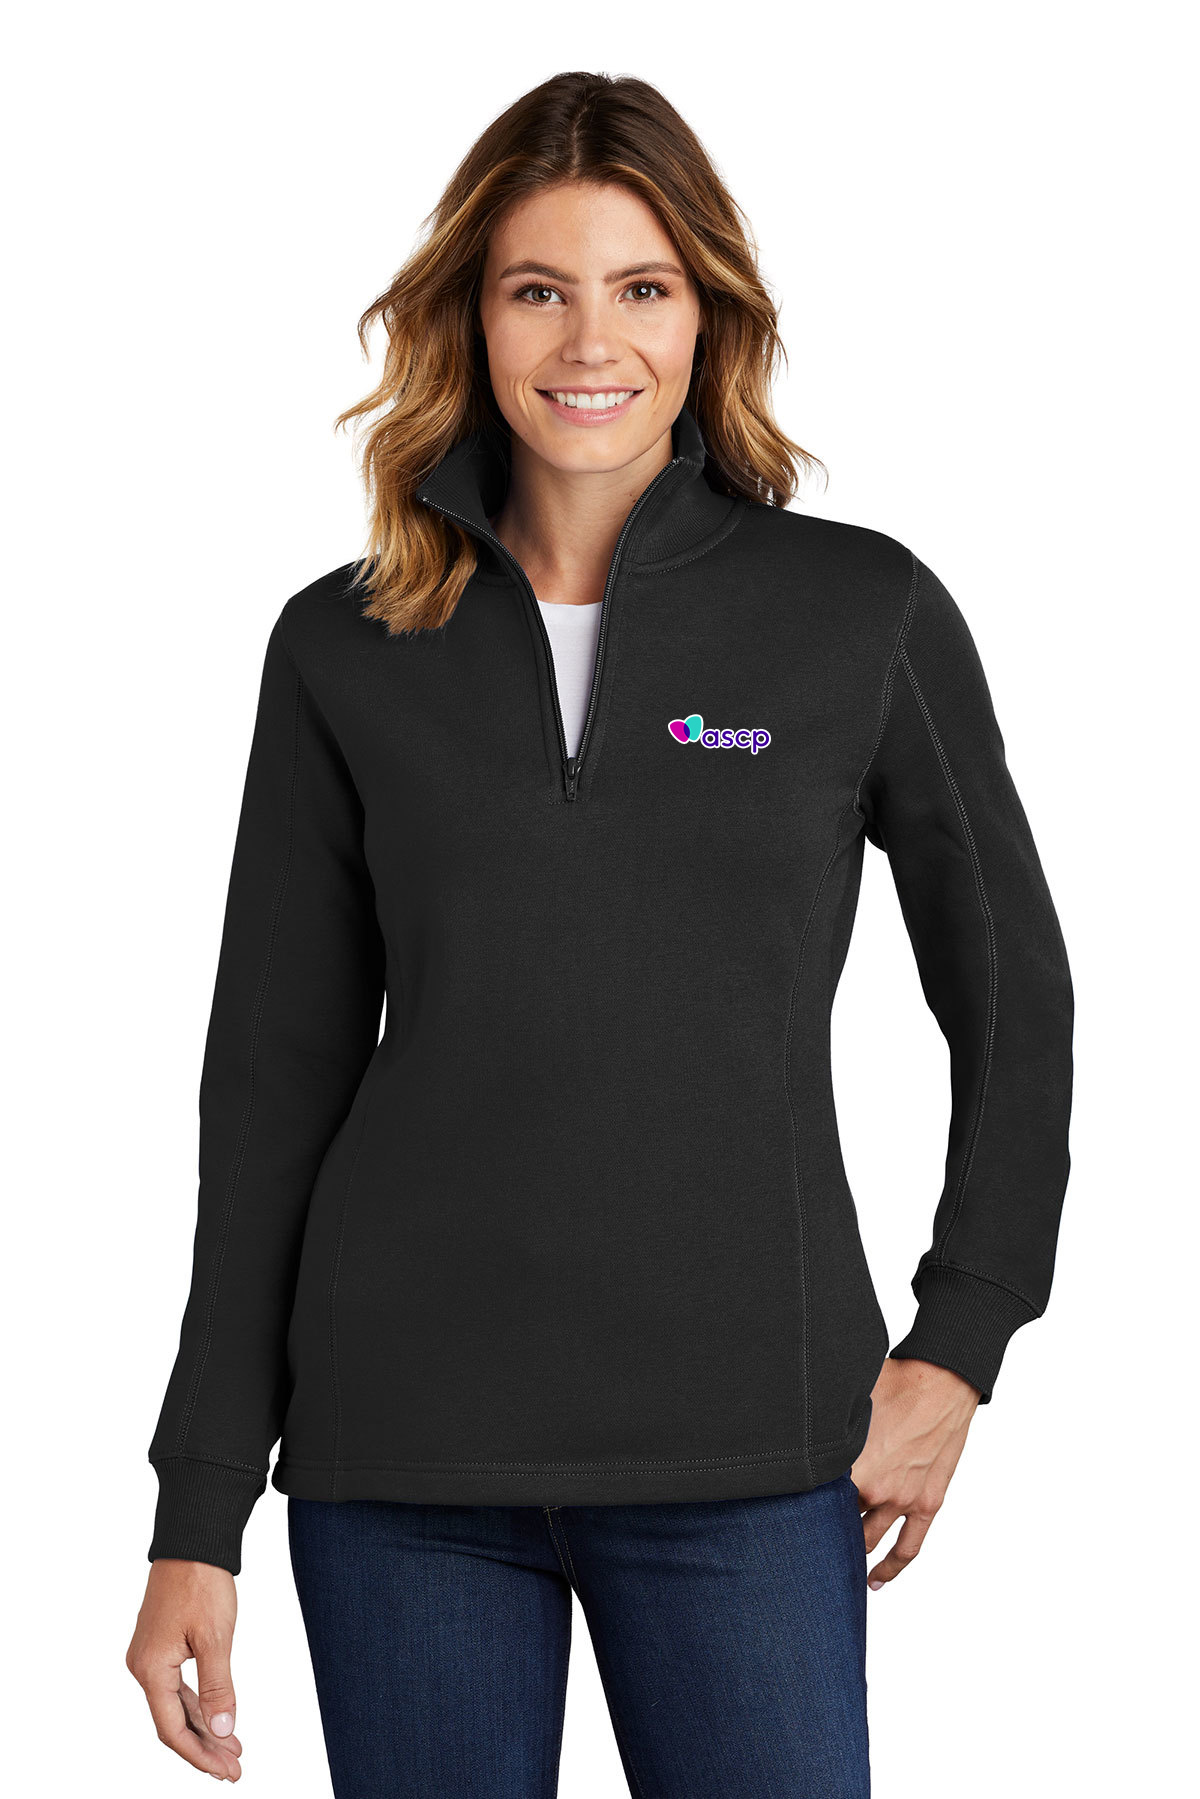 Women's 1/4-Zip Sweatshirt